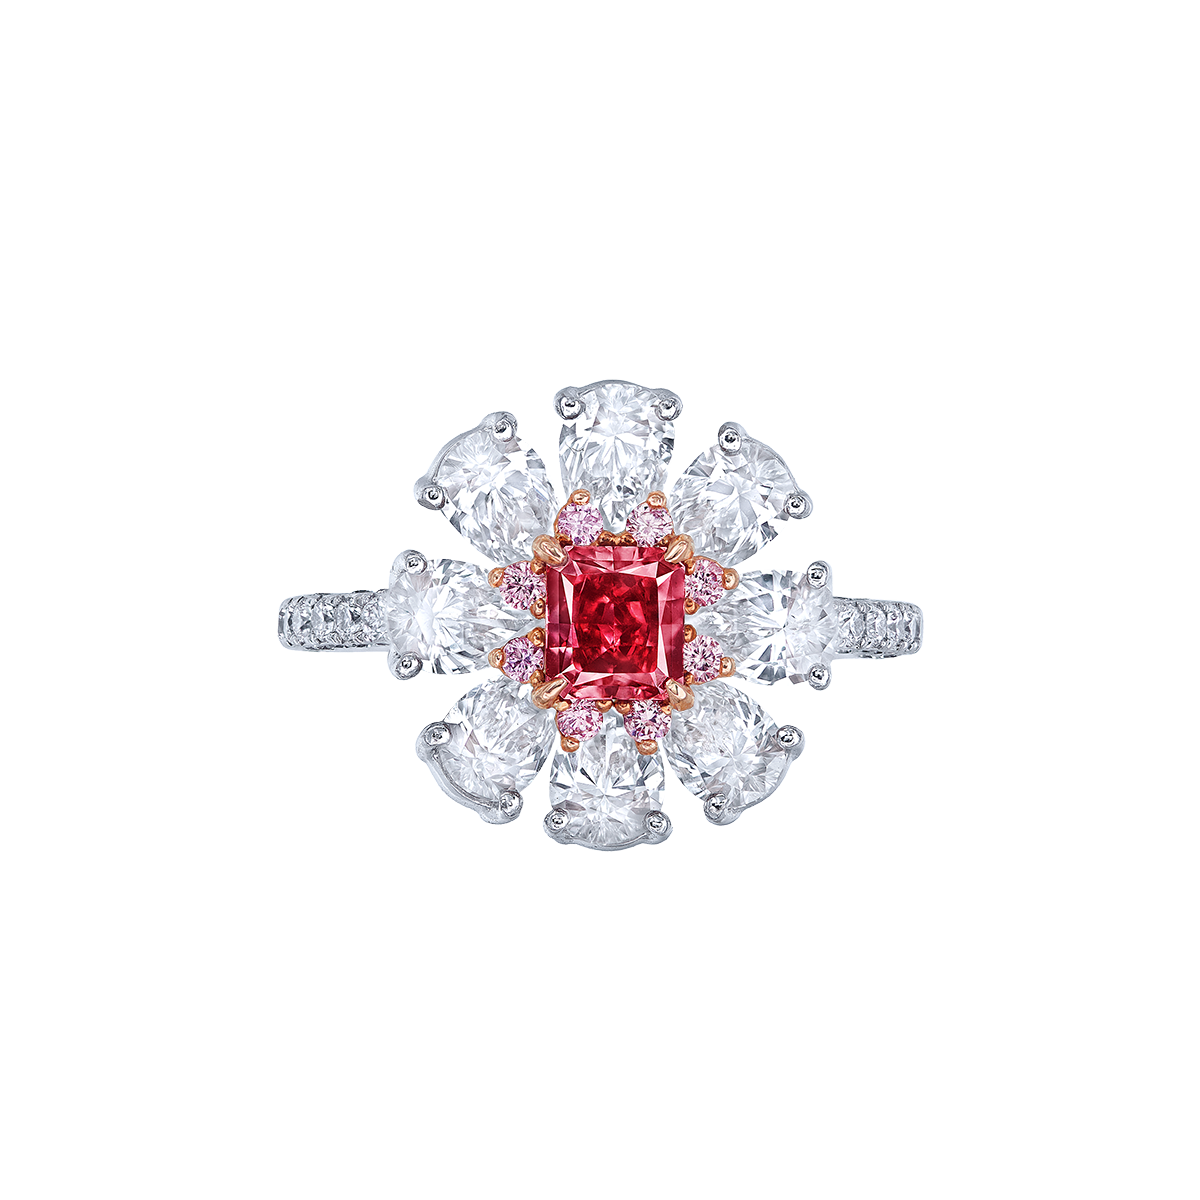 GIA 0.53克拉 紅鑽鑽戒